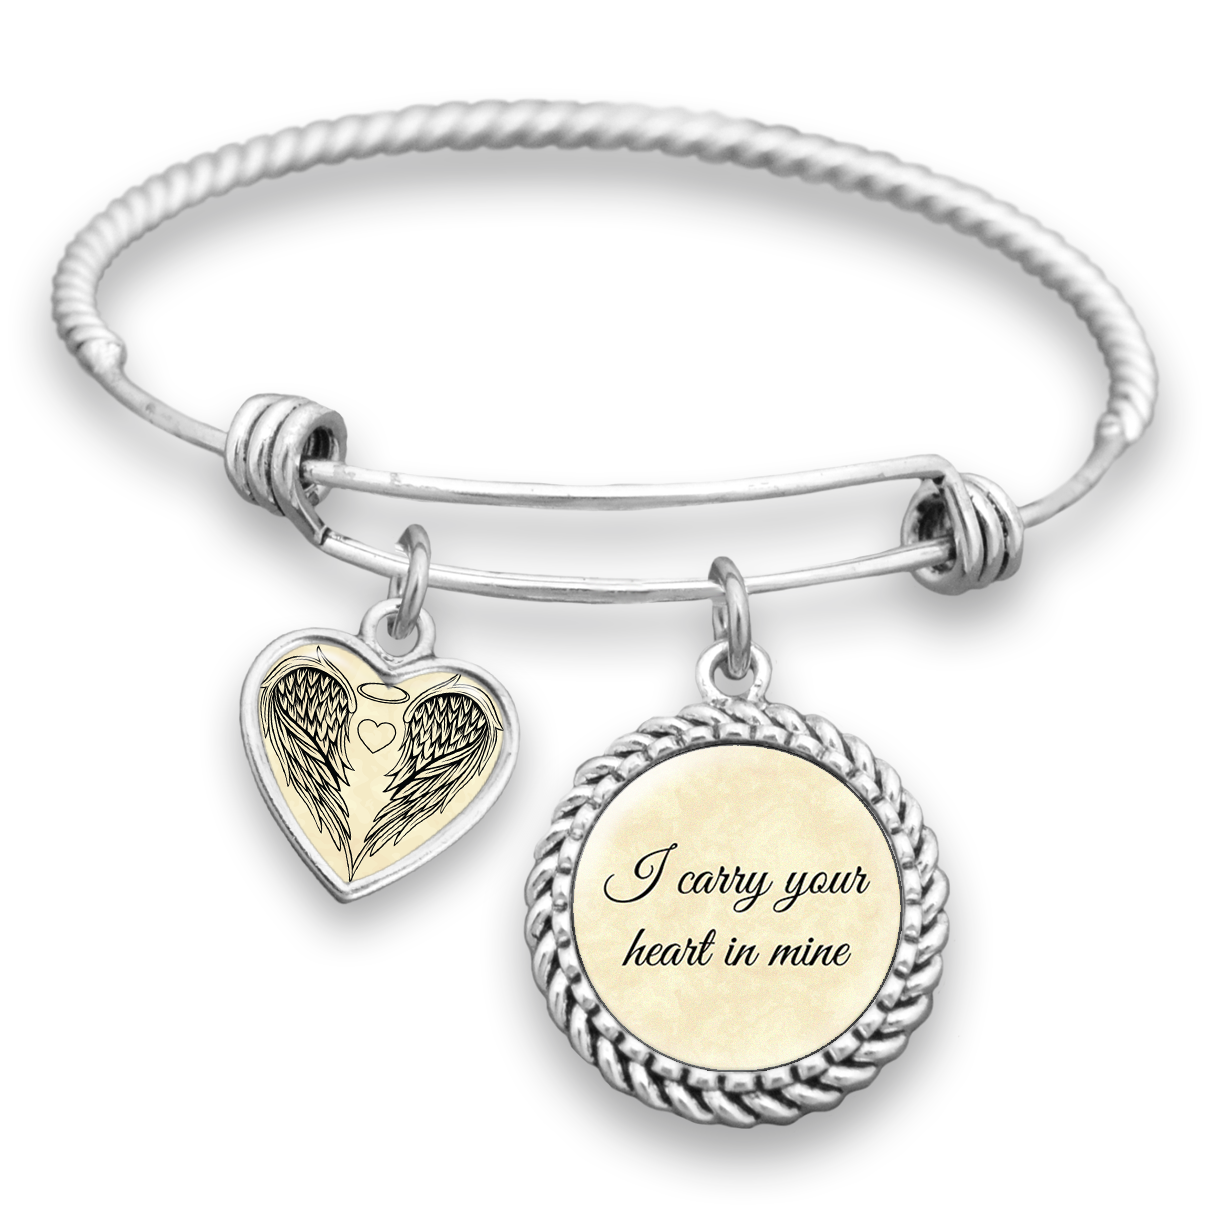 I Carry Your Heart In Mine Charm Bracelet